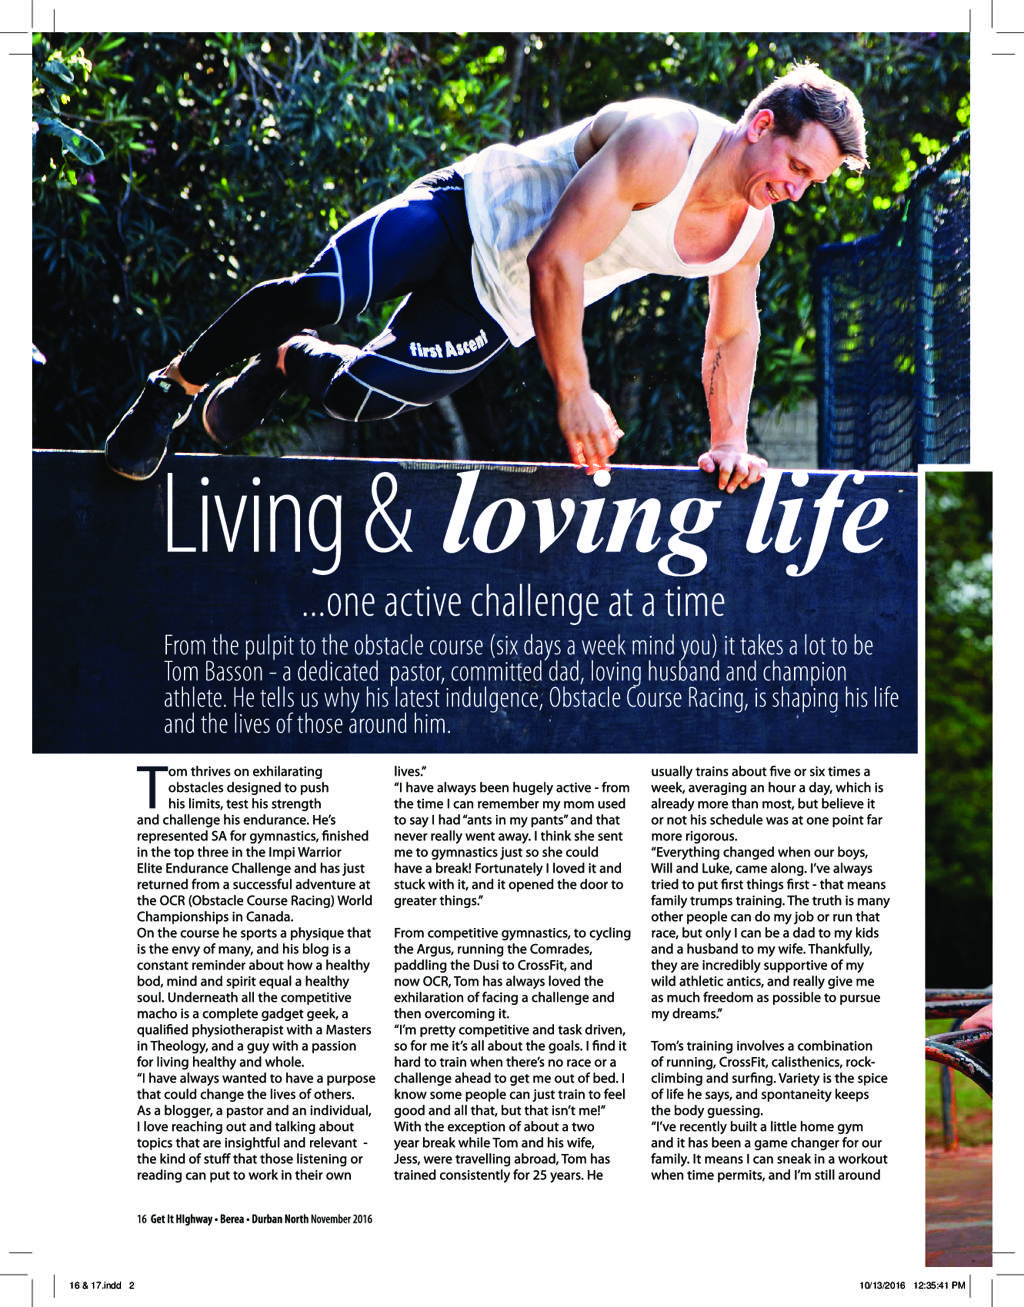 durban-get-it-magazine-november-2016-epapers-page-18